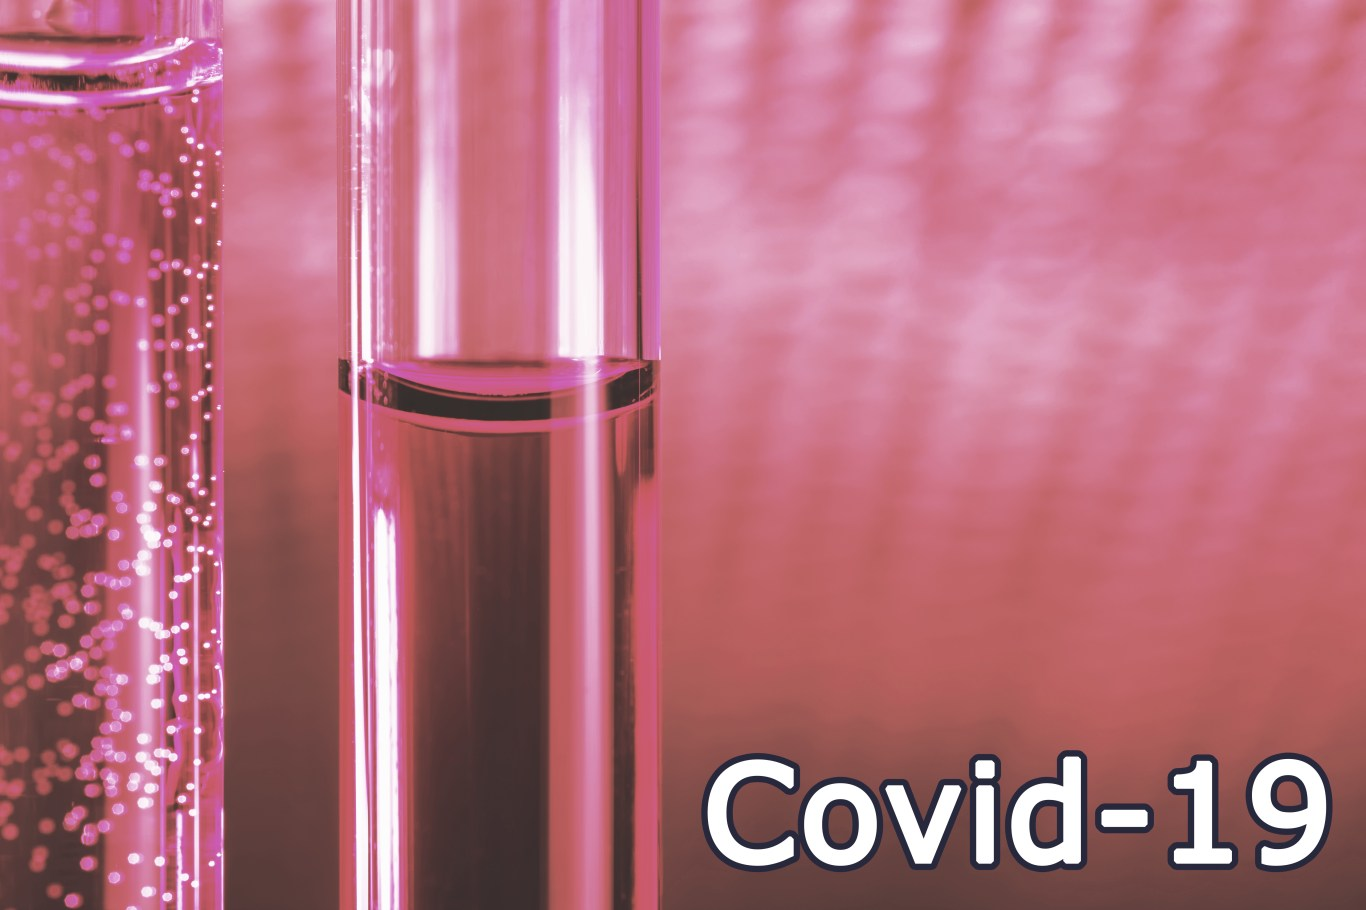 Covid-19. Red liquid vaccine in glass tubes.. Cases of COVID-19 illustration. Image credit: Ivan Uralsky. vaccine hesitancy concept. Also to illustrate article re: emergency use authorisation. Oxford/AstraZeneca vaccine. Also used in coverage of vaccine hoarding. Vaccination campaign concept. Cost of COVID-19 vaccine concept.